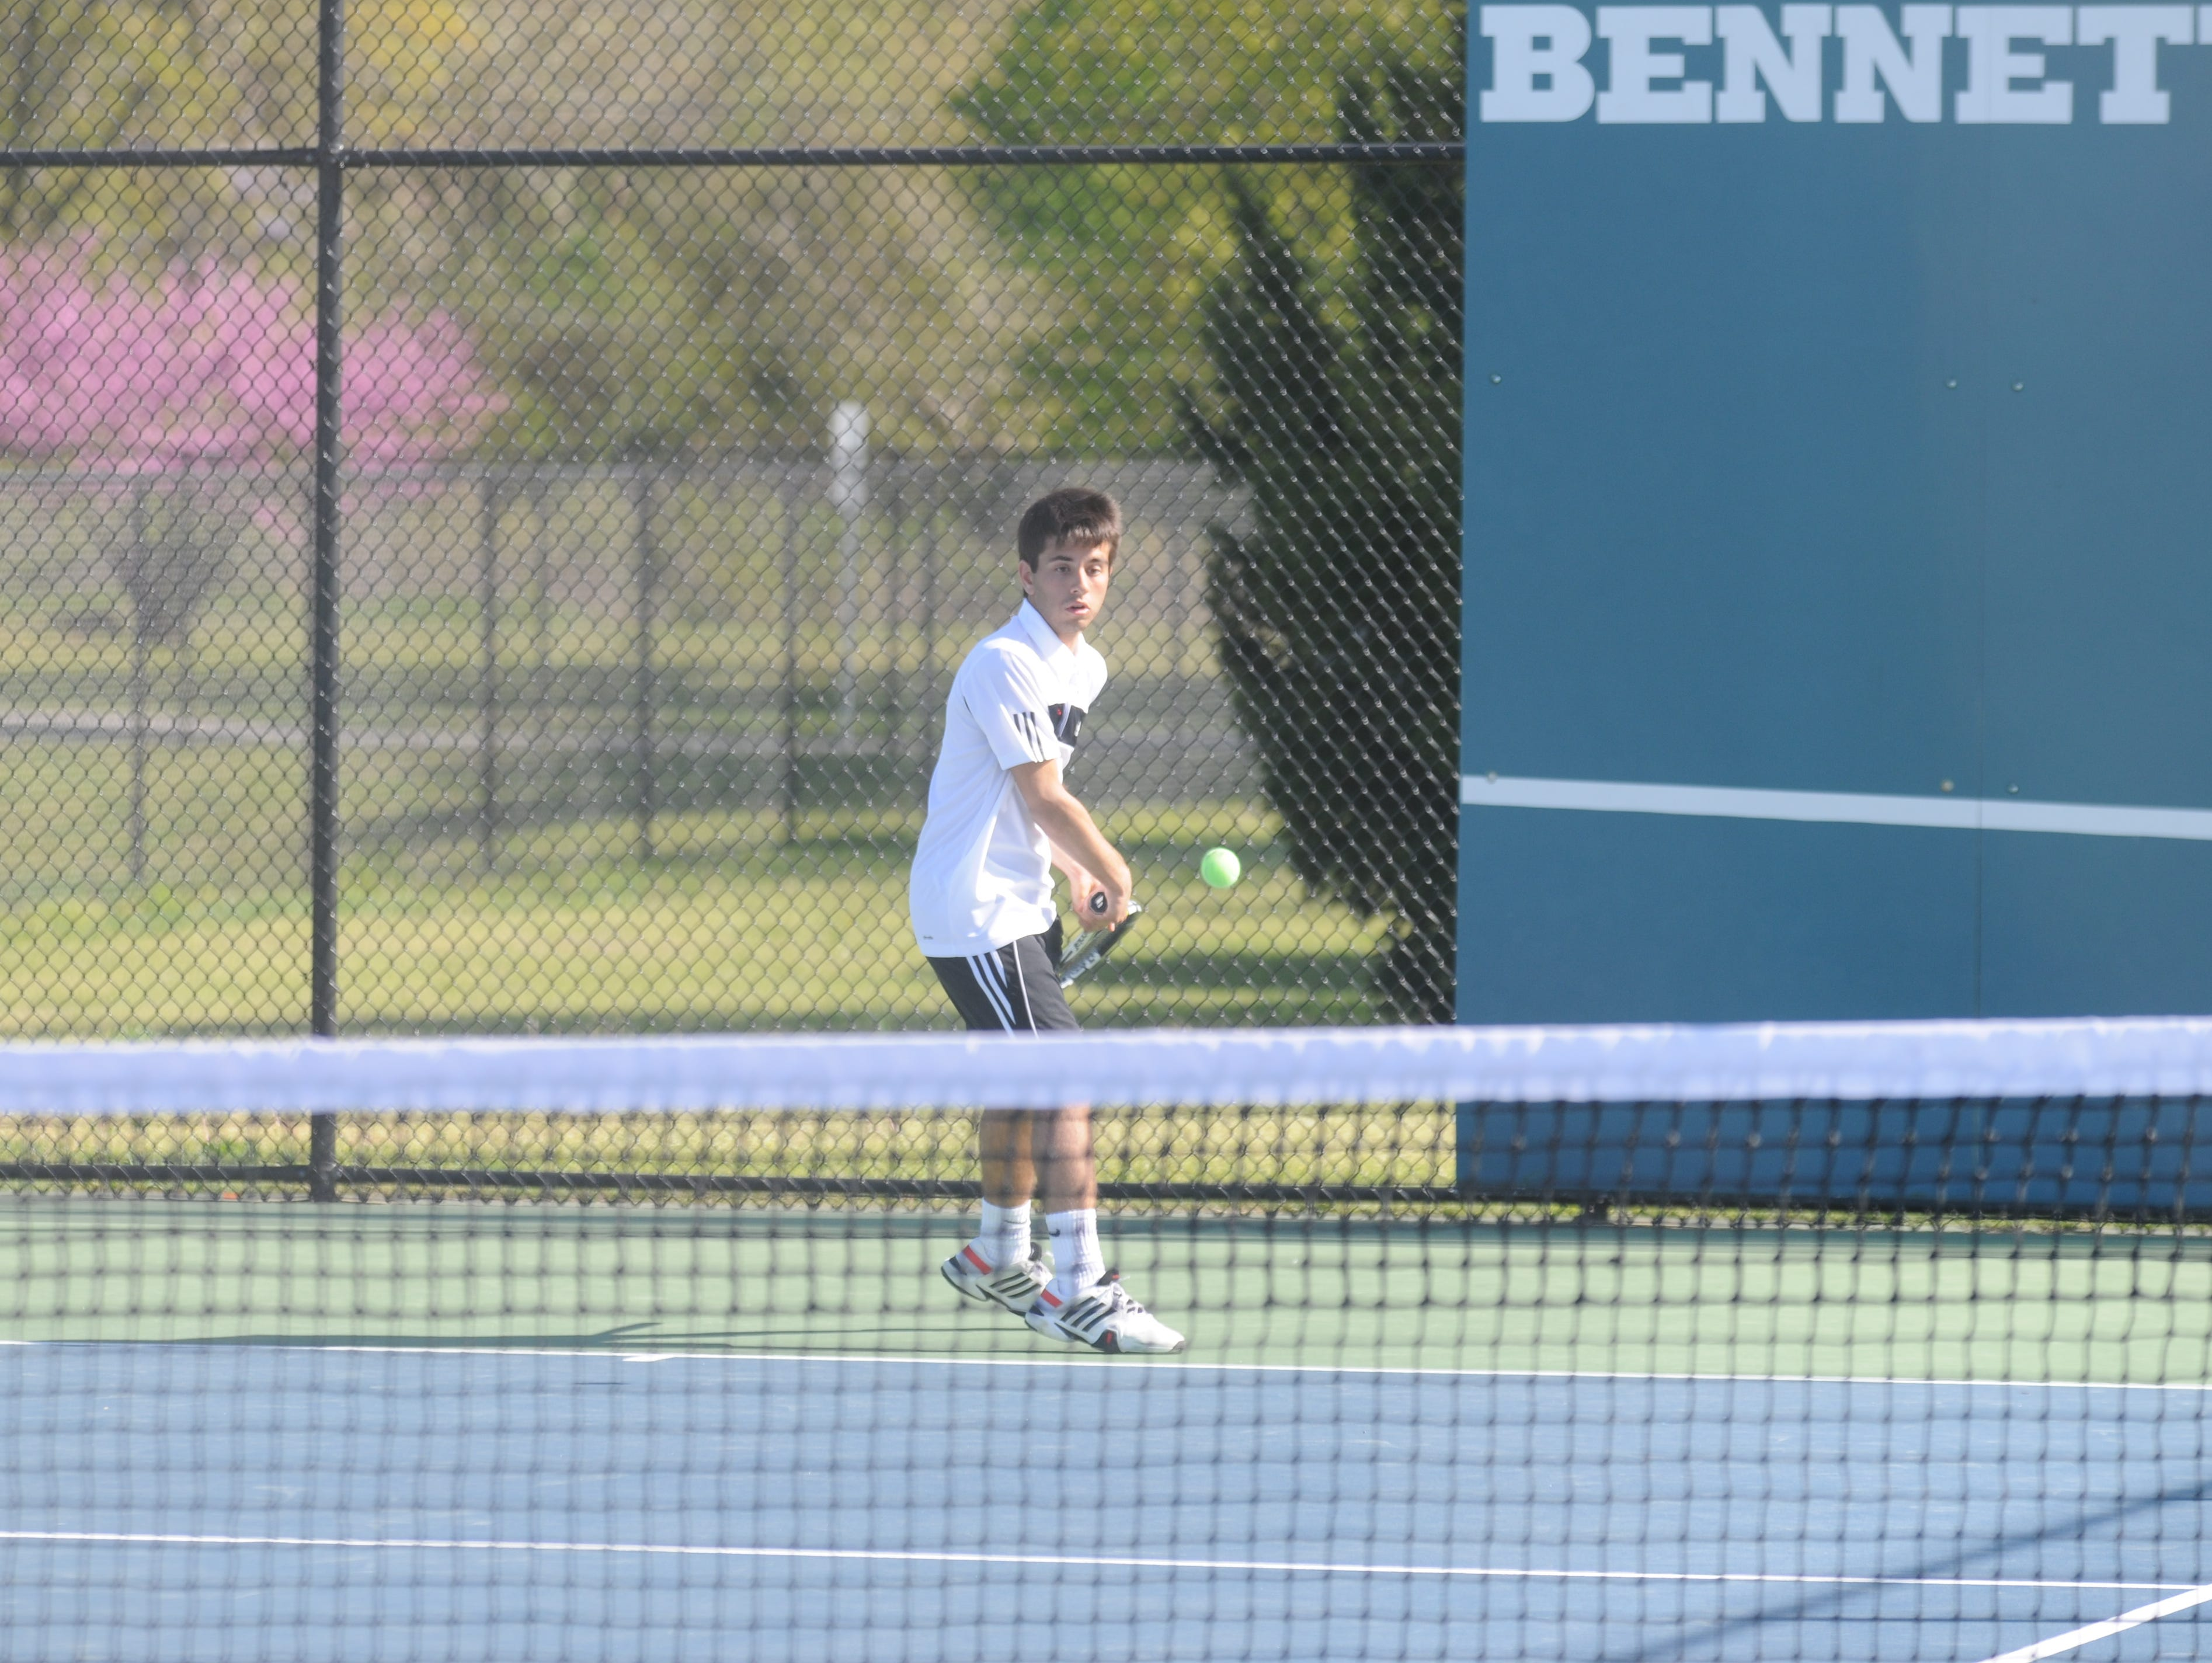 Calm, cool and collected, Kieran Murphy returns a serve during a singles match against Worcester Prep on Wednesday in Salisbury.